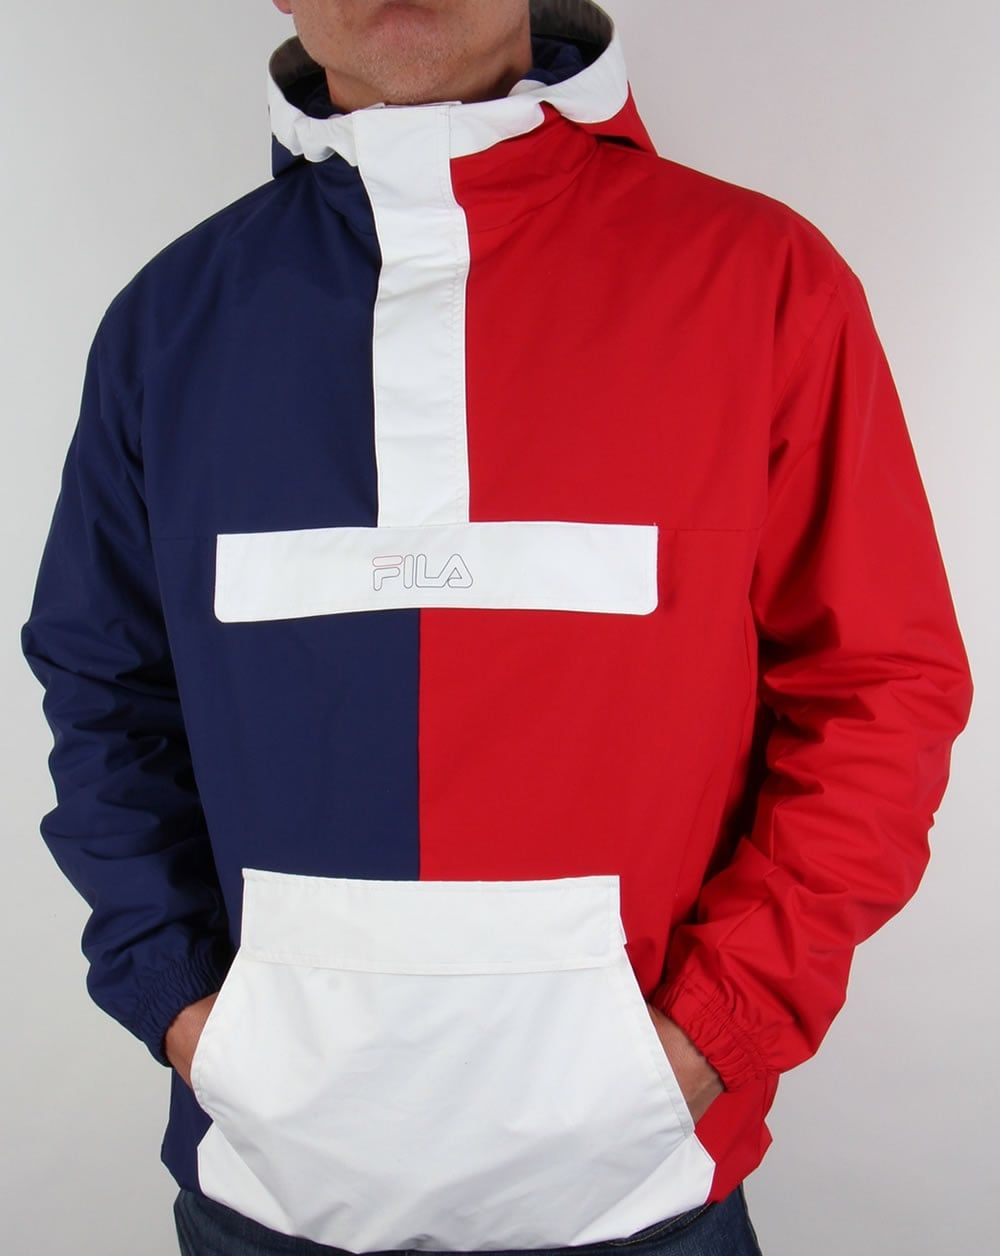 Fila Sweatshirt Jacket Hood Bomber Zip Vintage Men Women White Red Navy Blue Oldschool kstuJgXqpN